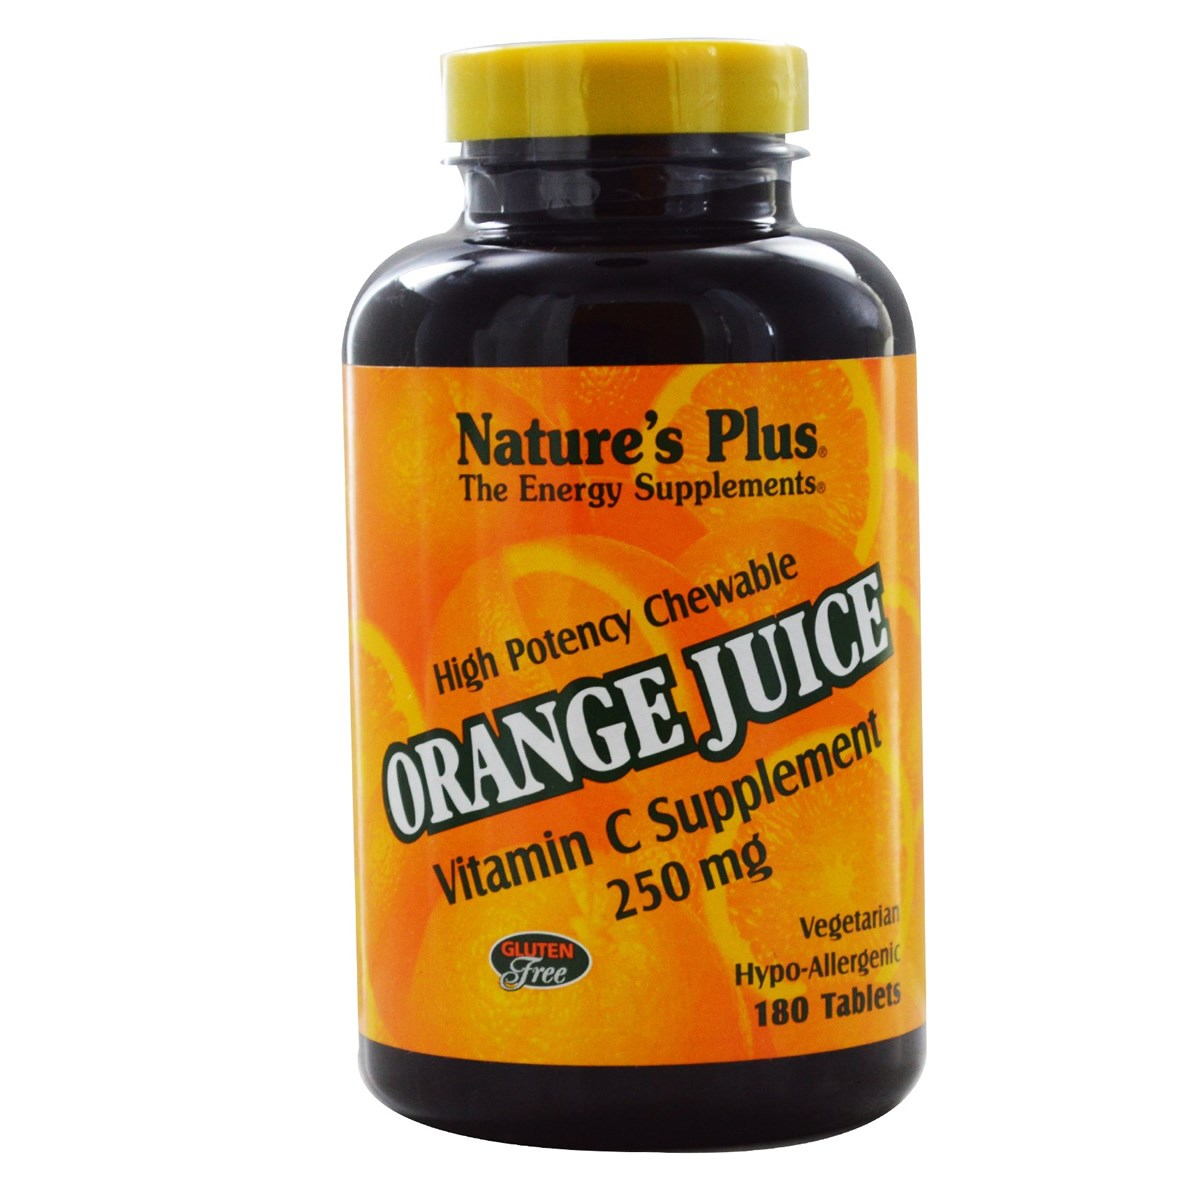 Natures Plus Orange Juice Vitamin C 250 mg - Chewable Tablets